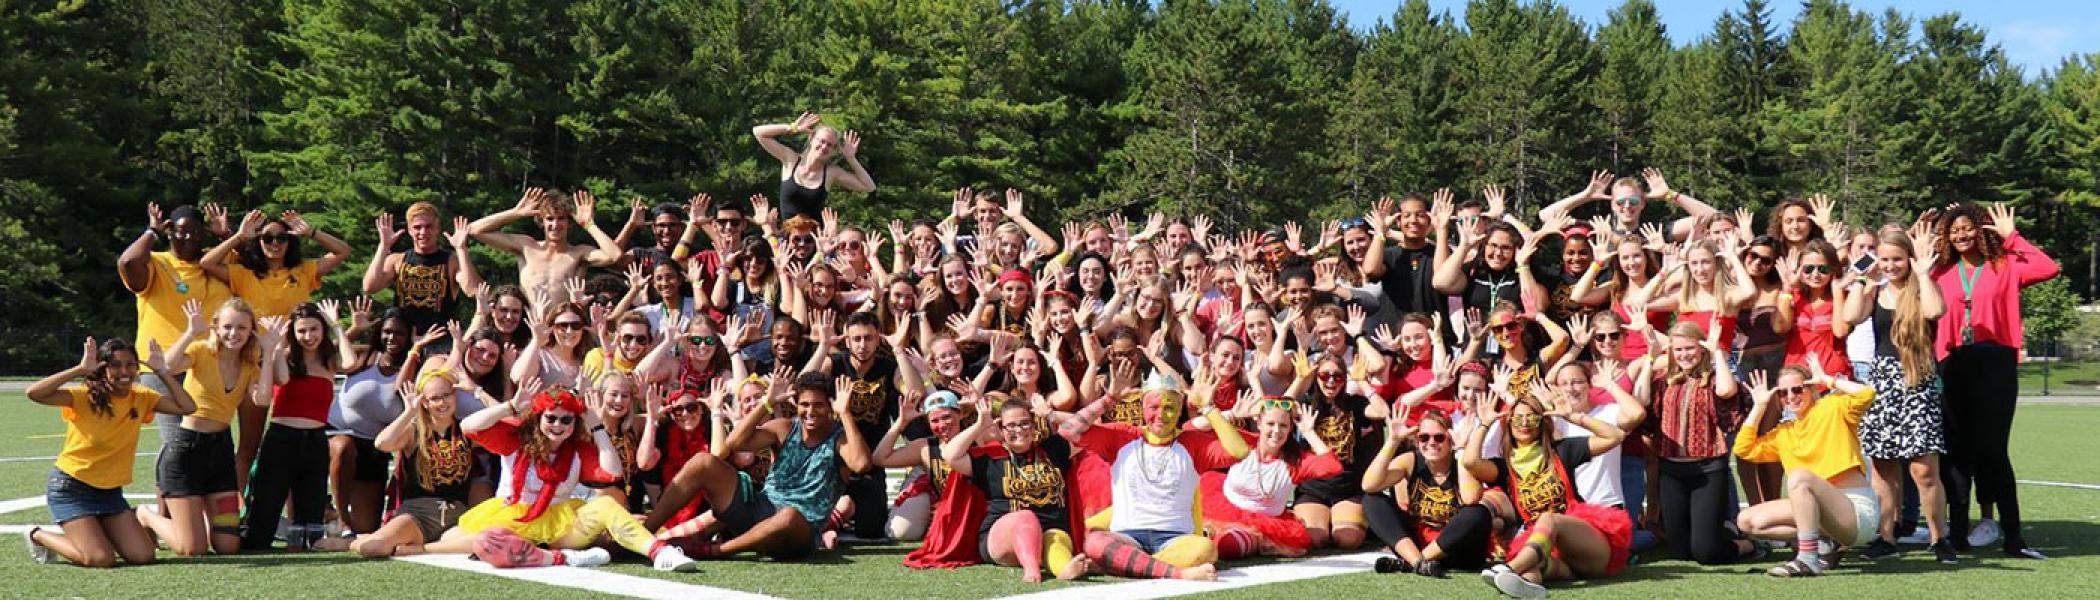 Group picture of the Gzowski Orientation Team and students at the Closing Ceremony